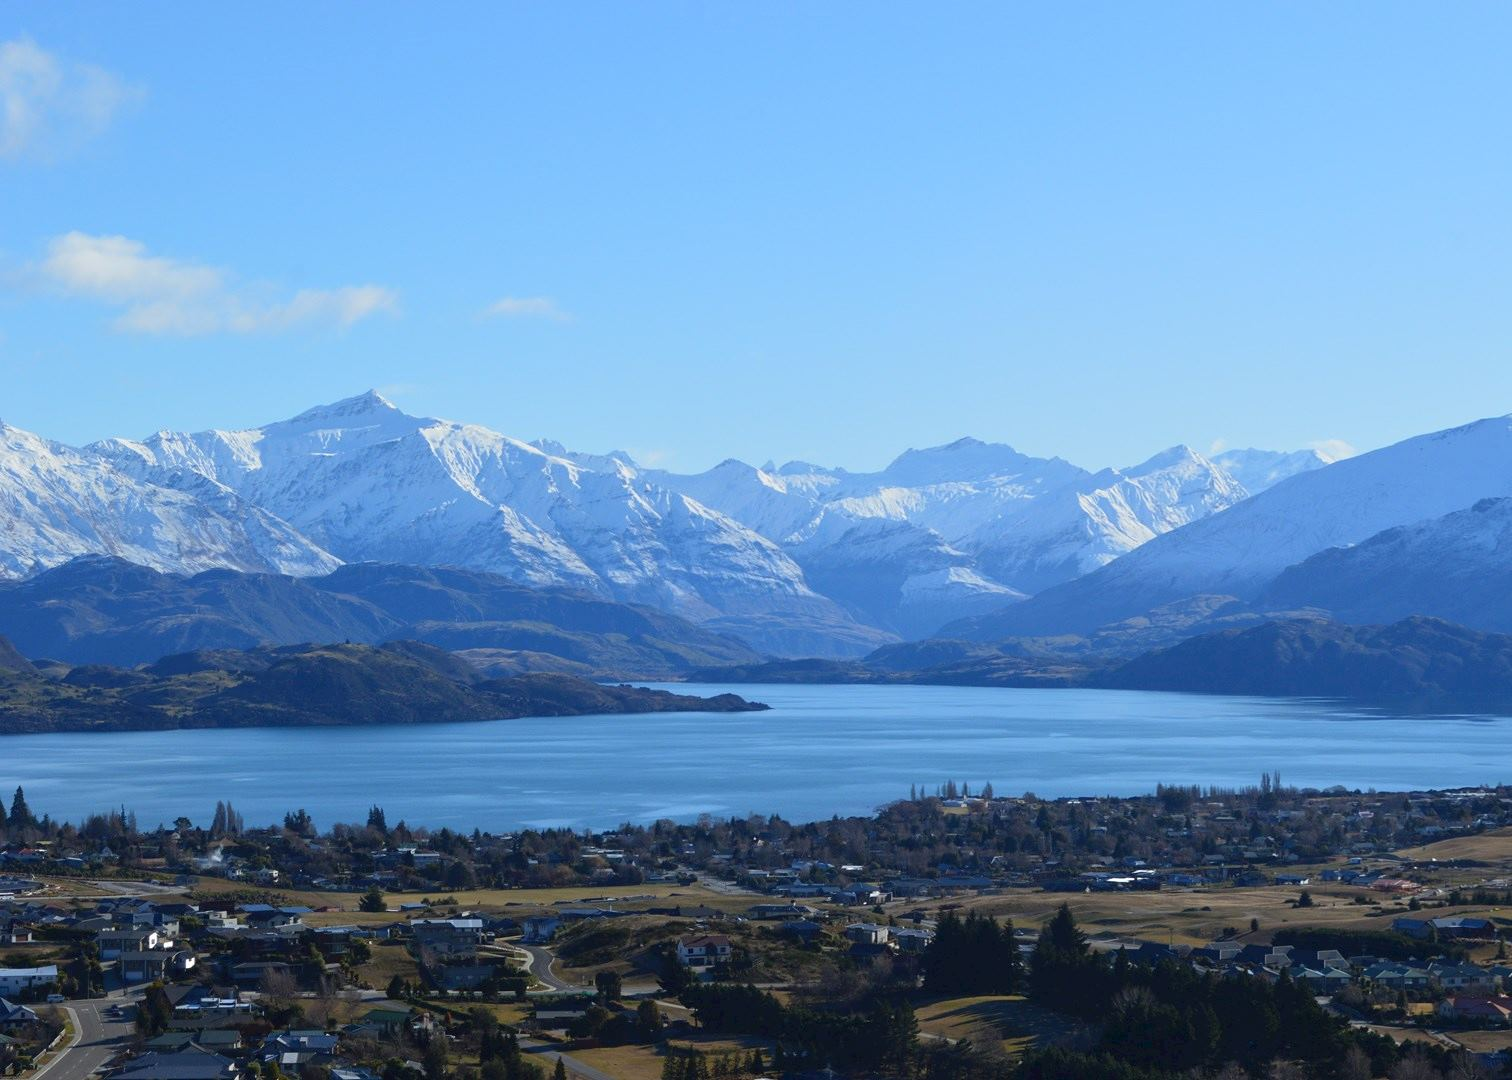 Visit Lake Wanaka on a trip to New Zealand